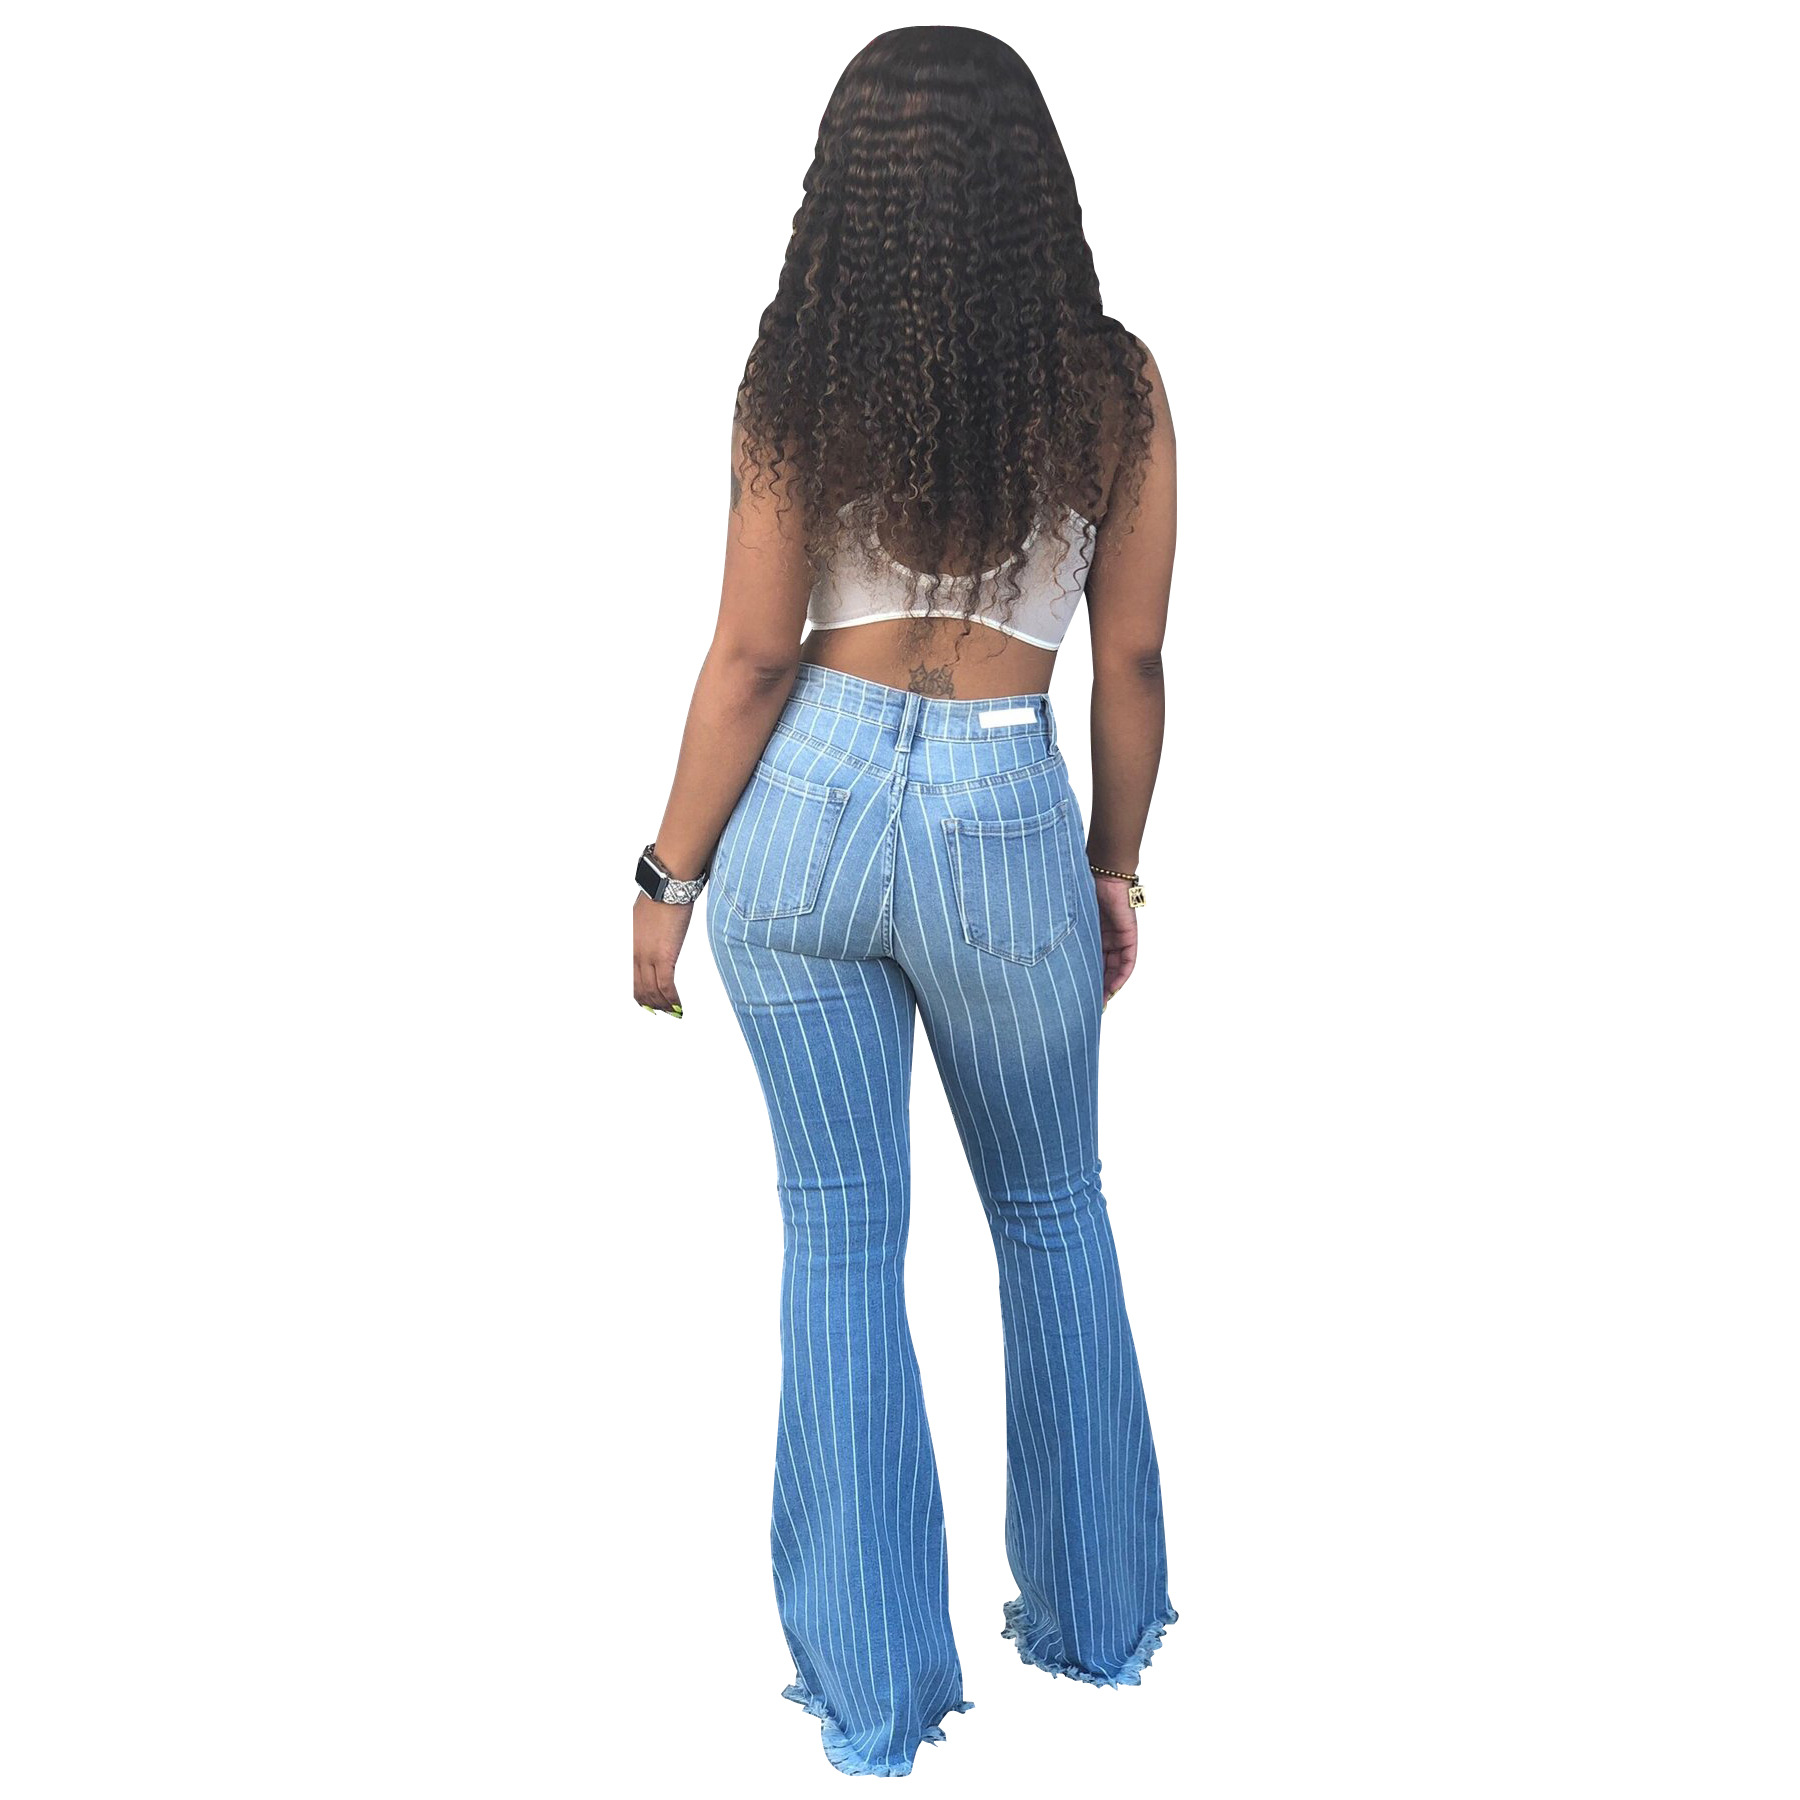 Women 39 s High Waist Flare Jeans 2019 Summer Fashion Ladies Stripe Denim Jeans Female Casual Wide Leg Skinny Cowboy Trousers in Jeans from Women 39 s Clothing